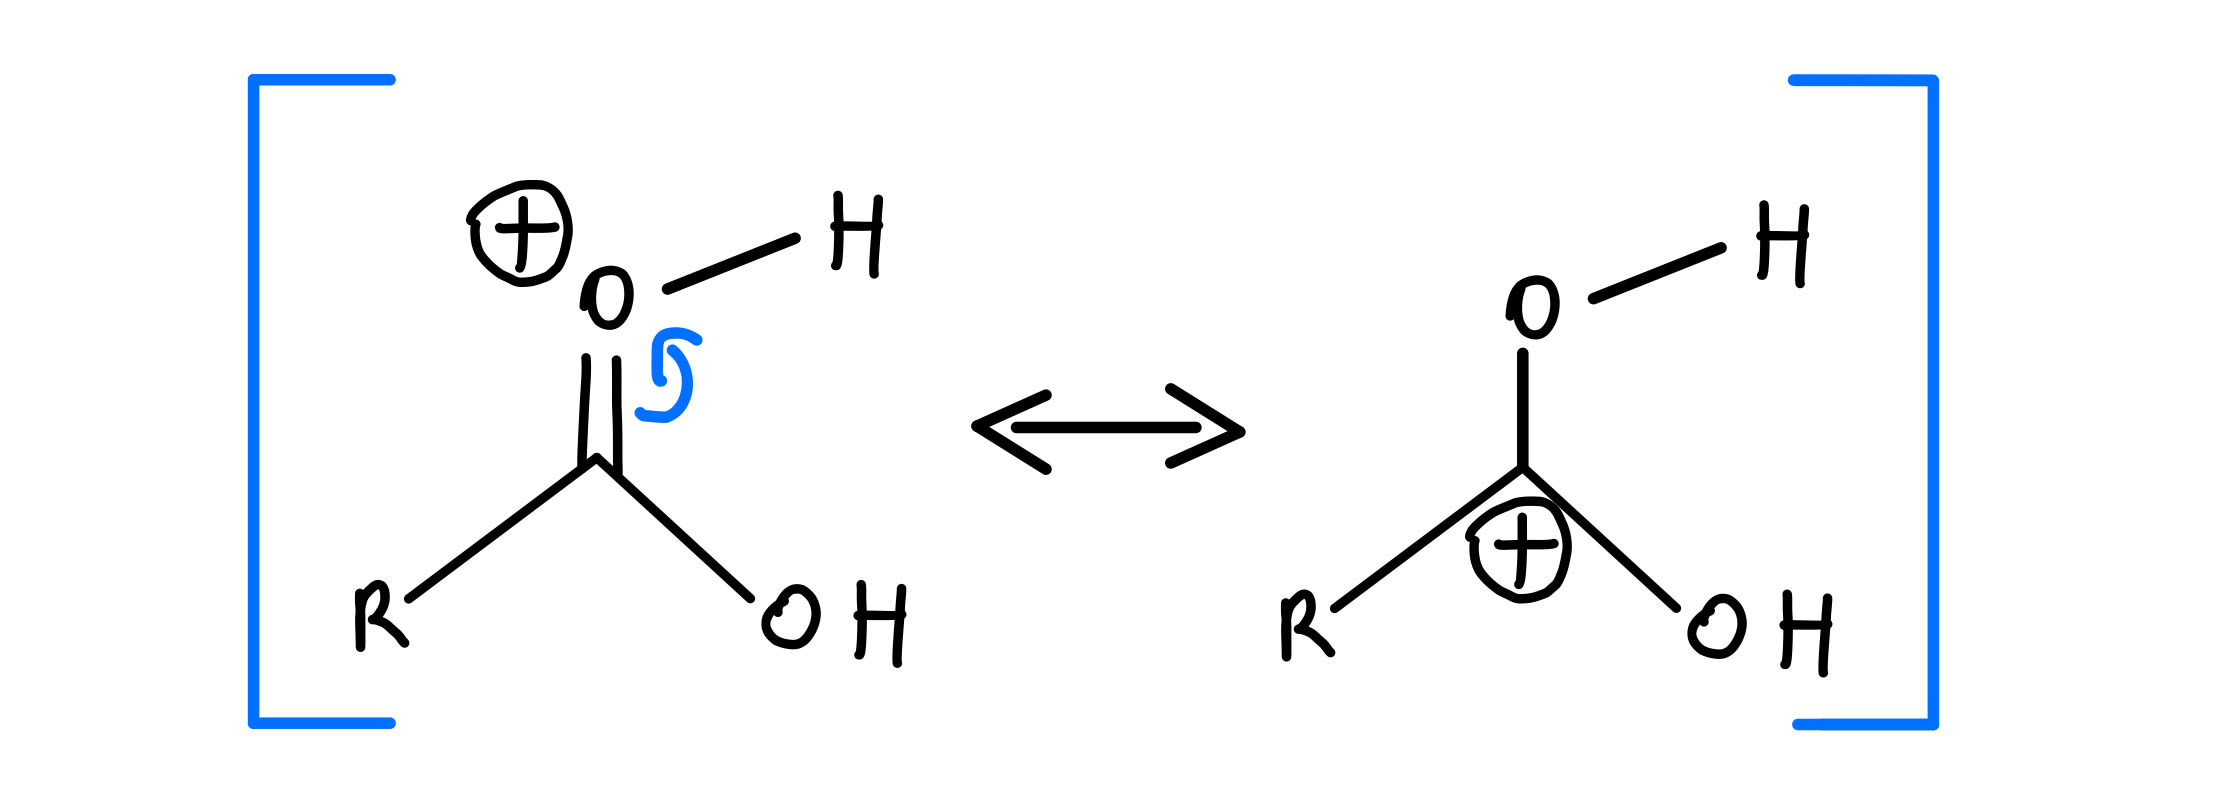 Protonated carbonyl resonance